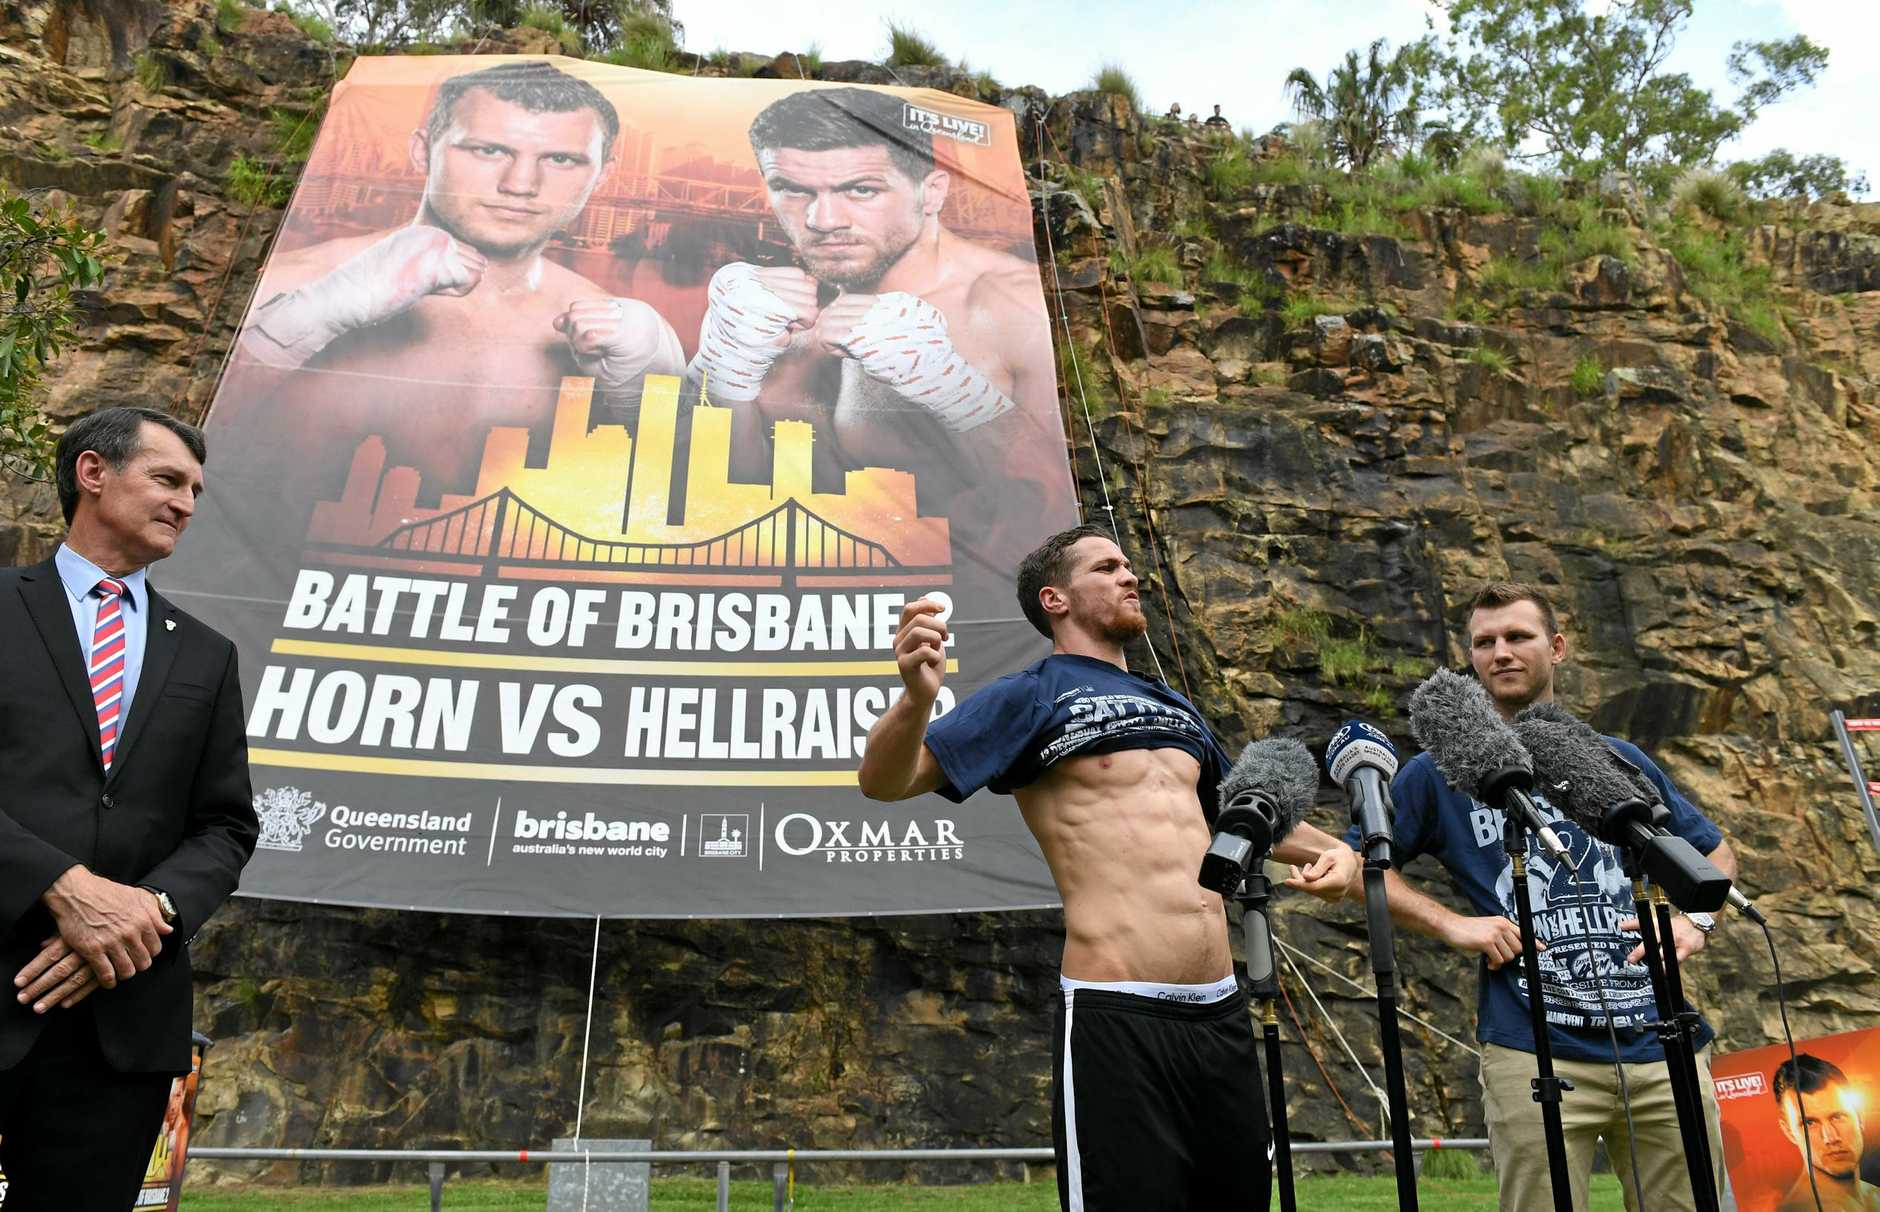 British boxer Gary Corcoran (centre), watched by Brisbane Lord Mayor Graham Quirk (left) and Australian boxer and WBO world welterweight champion Jeff Horn, shows his physique to the request of promoter Dean Lonergan during a media event in Brisbane, Tuesday, December 5, 2017. Horn and Corcoran will clash in a title fight dubbed